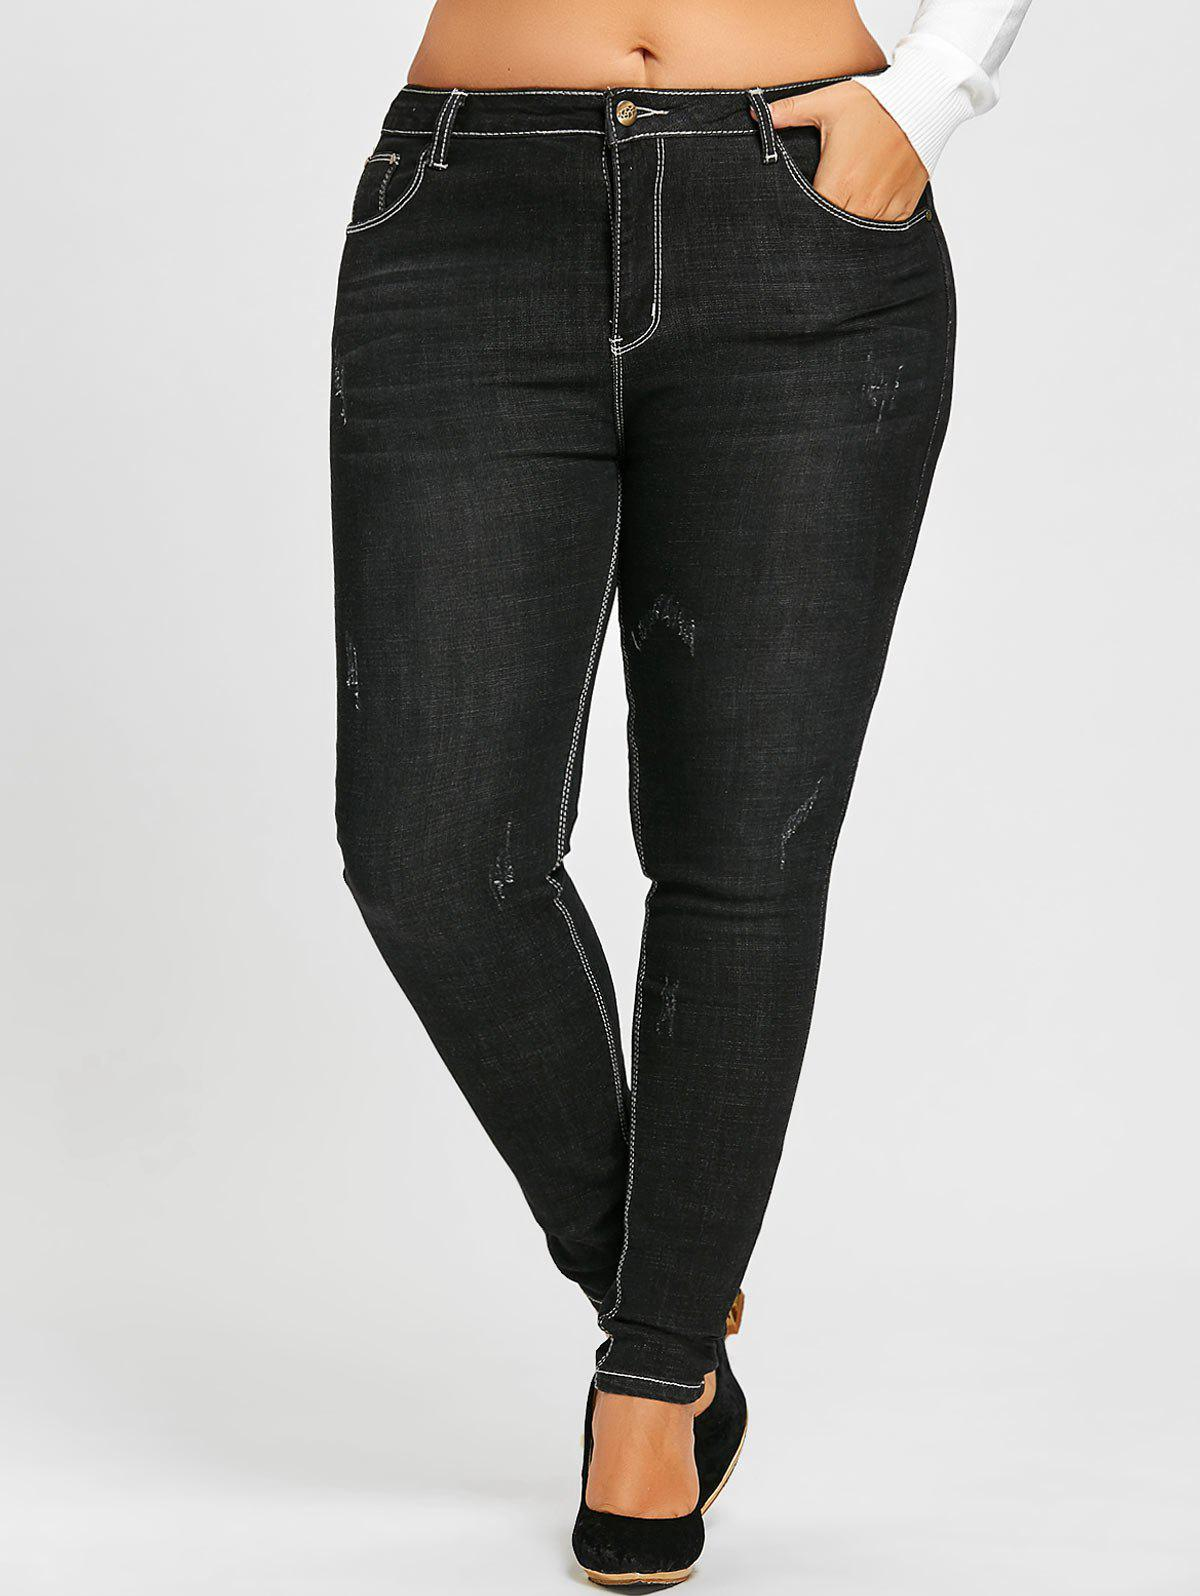 Plus Size Destroyed Wash Skinny JeansWOMEN<br><br>Size: 5XL; Color: BLACK; Style: Fashion; Length: Ninth; Material: Jeans,Polyester; Fabric Type: Denim; Fit Type: Skinny; Waist Type: High; Closure Type: Zipper Fly; Pattern Type: Solid; Embellishment: Pockets; Pant Style: Pencil Pants; Weight: 0.5700kg; Package Contents: 1 x Jeans;